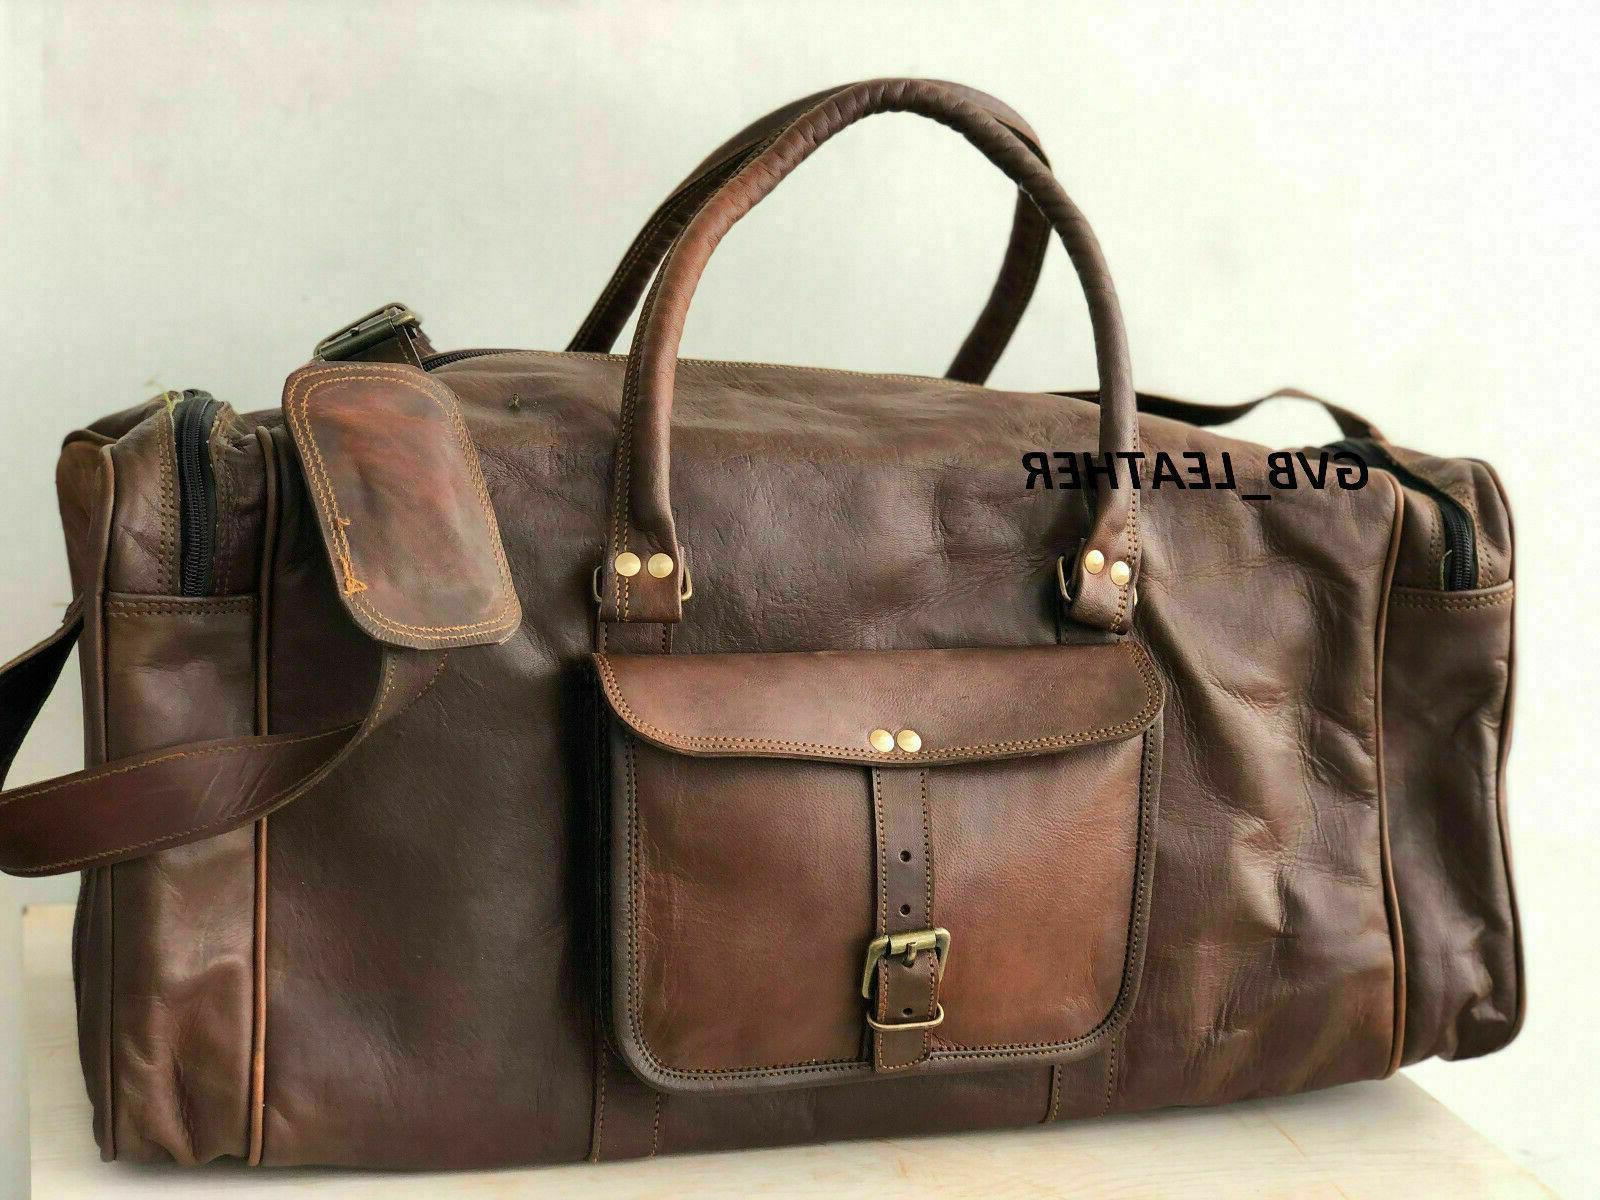 holdall weekend travel bag real leather duffle